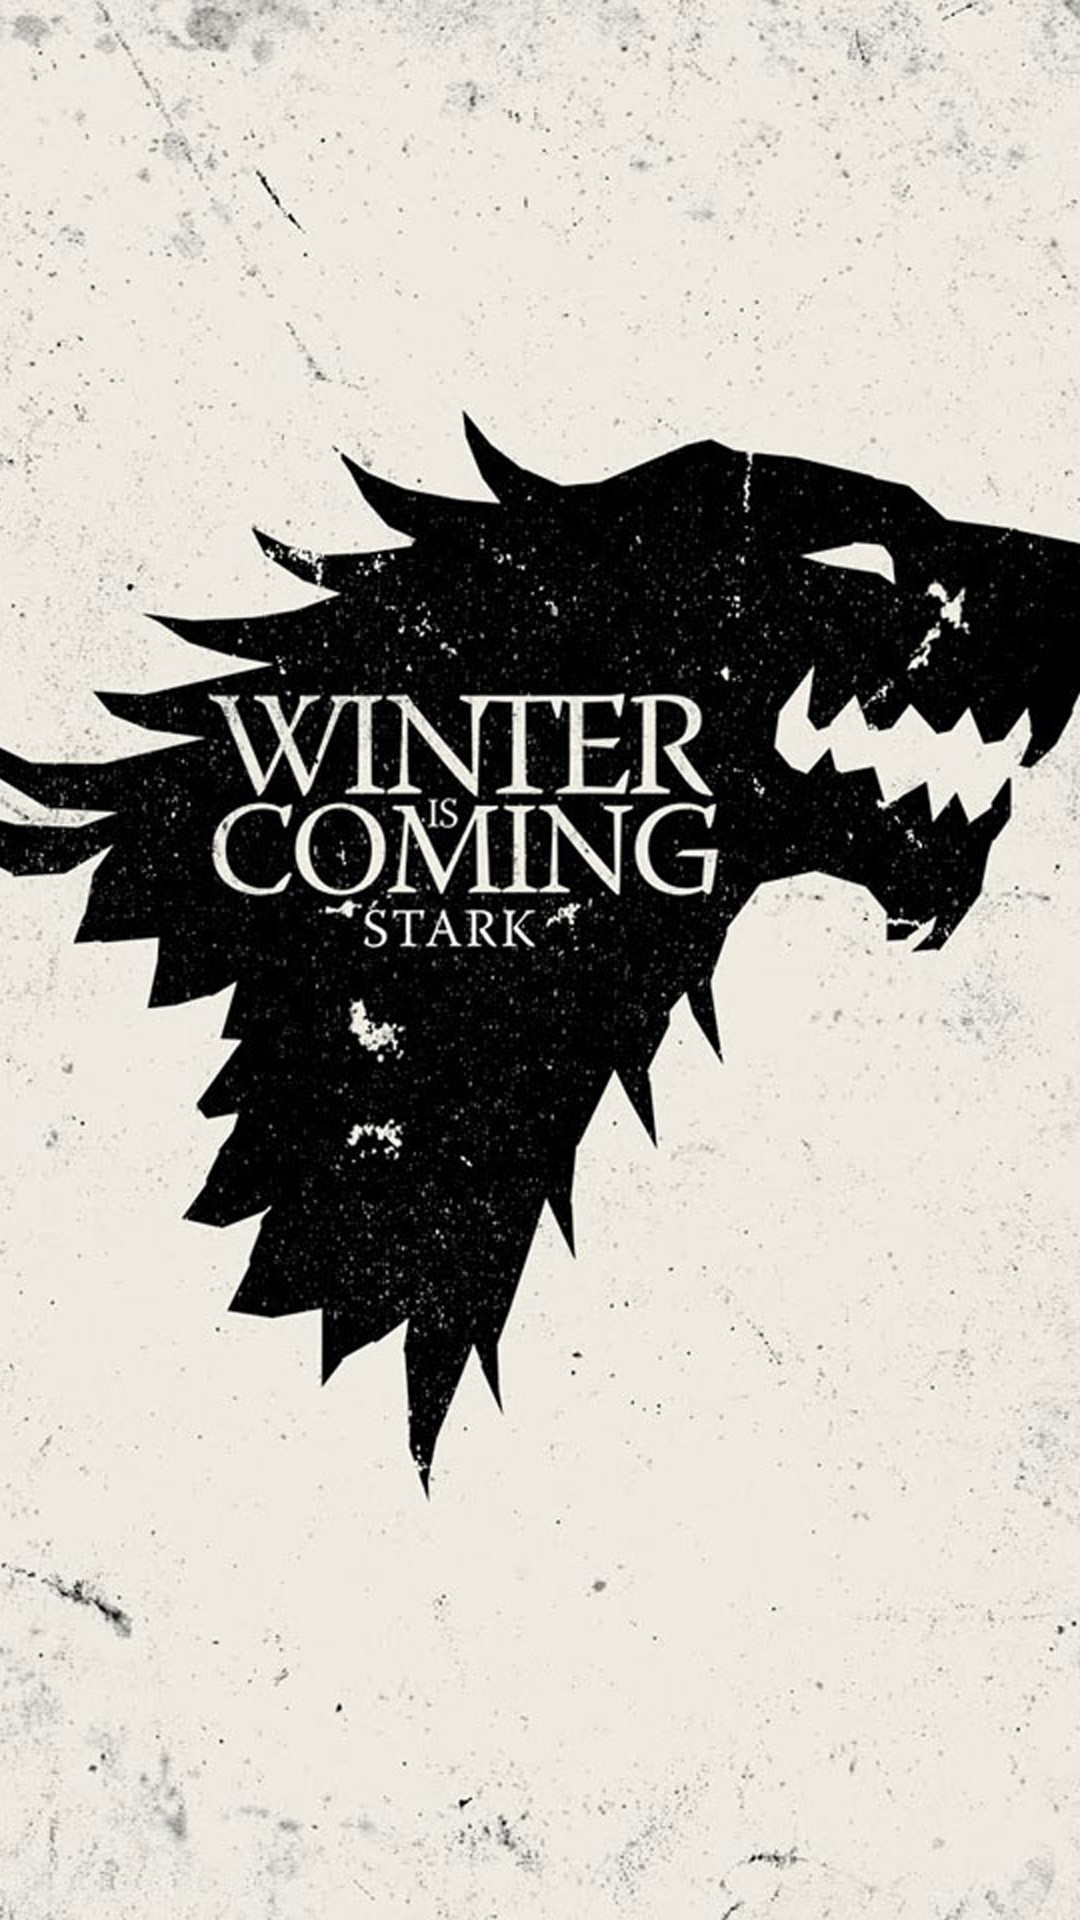 Winter is Coming HD Wallpaper iPhone 6 plus